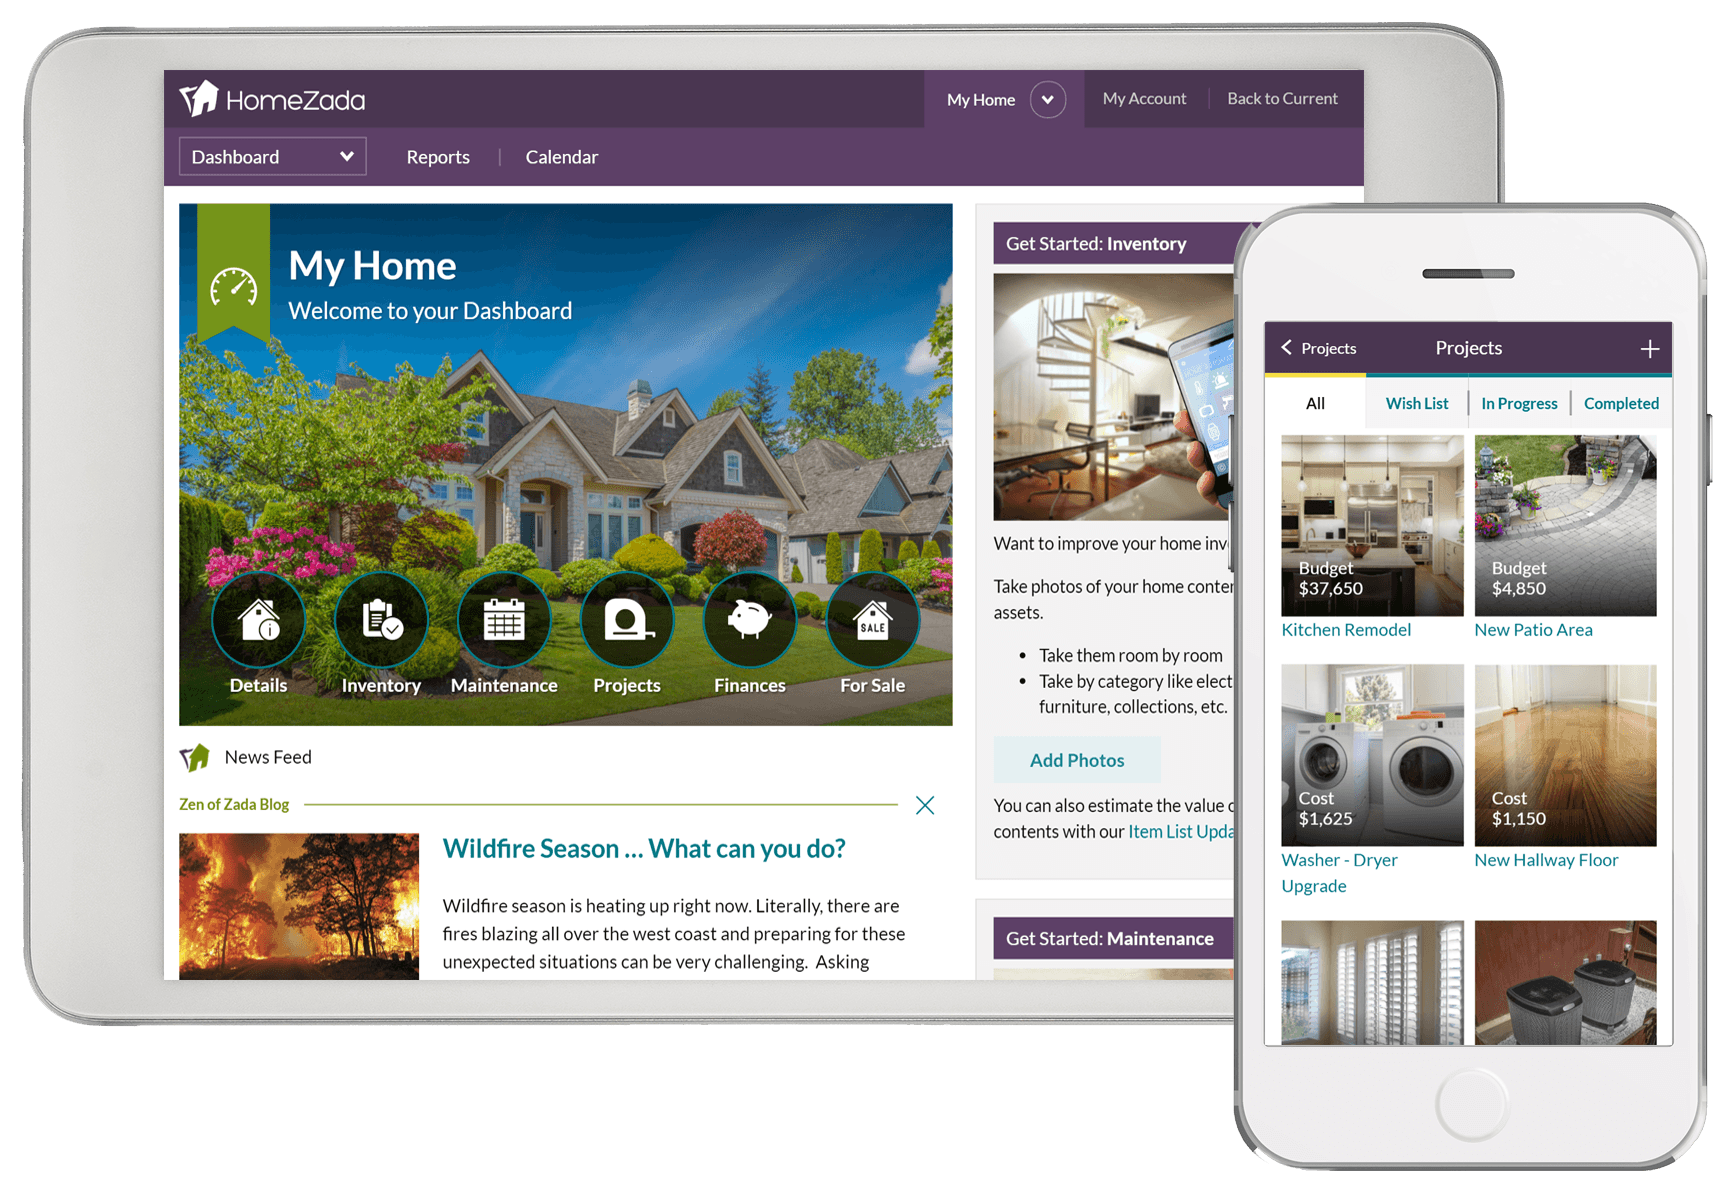 Homezada home management intro to buyers